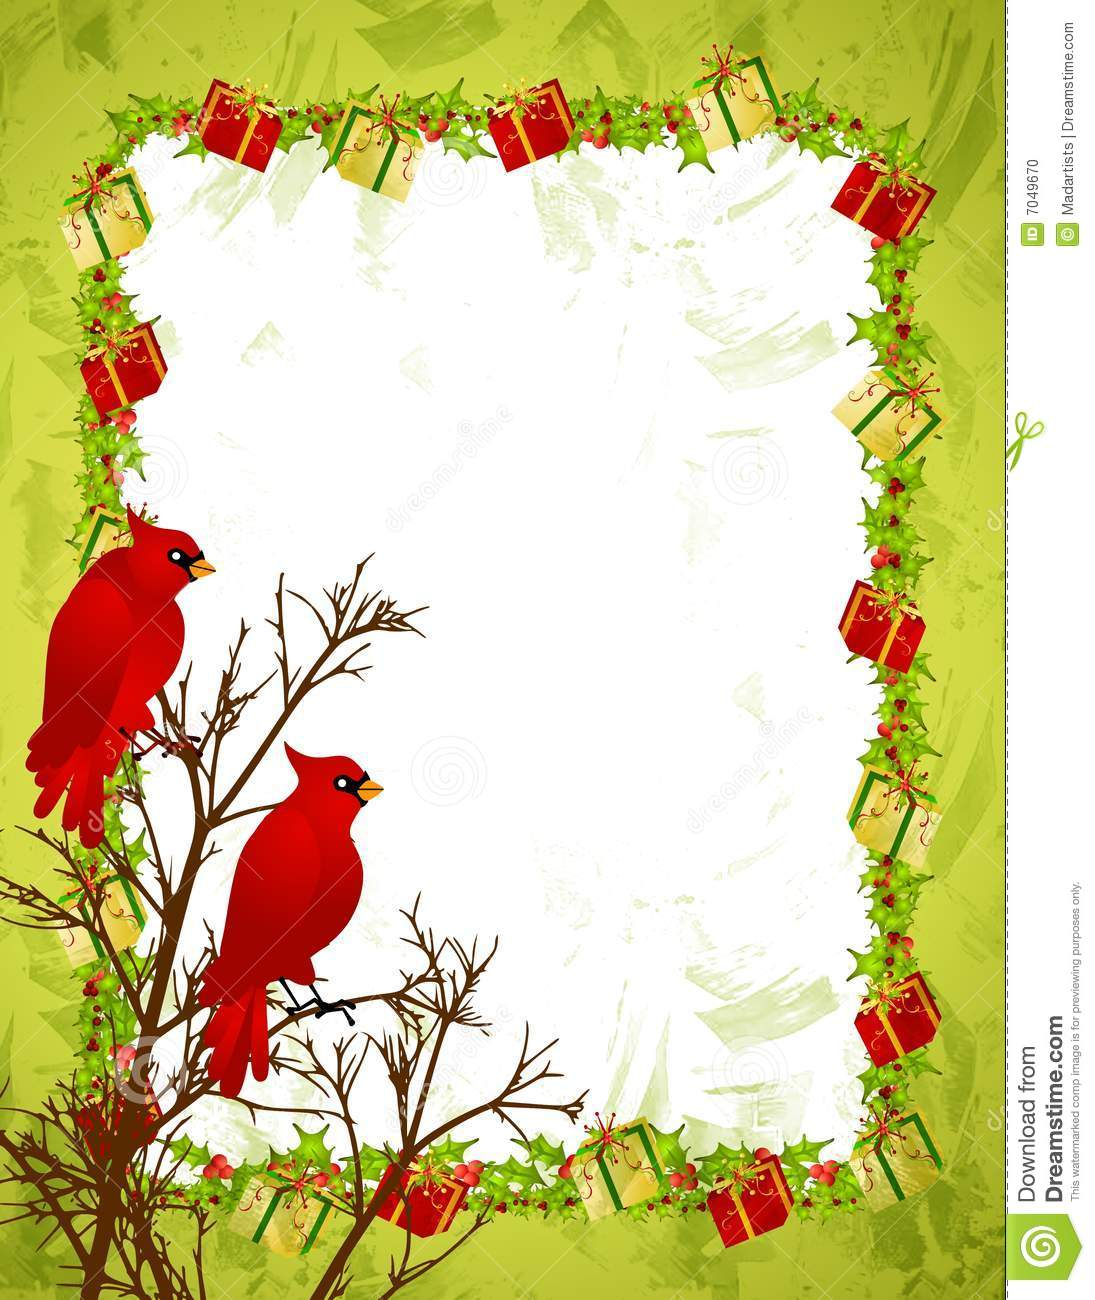 clip art illustration of 2 red cardinal birds sitting on a branch in ...